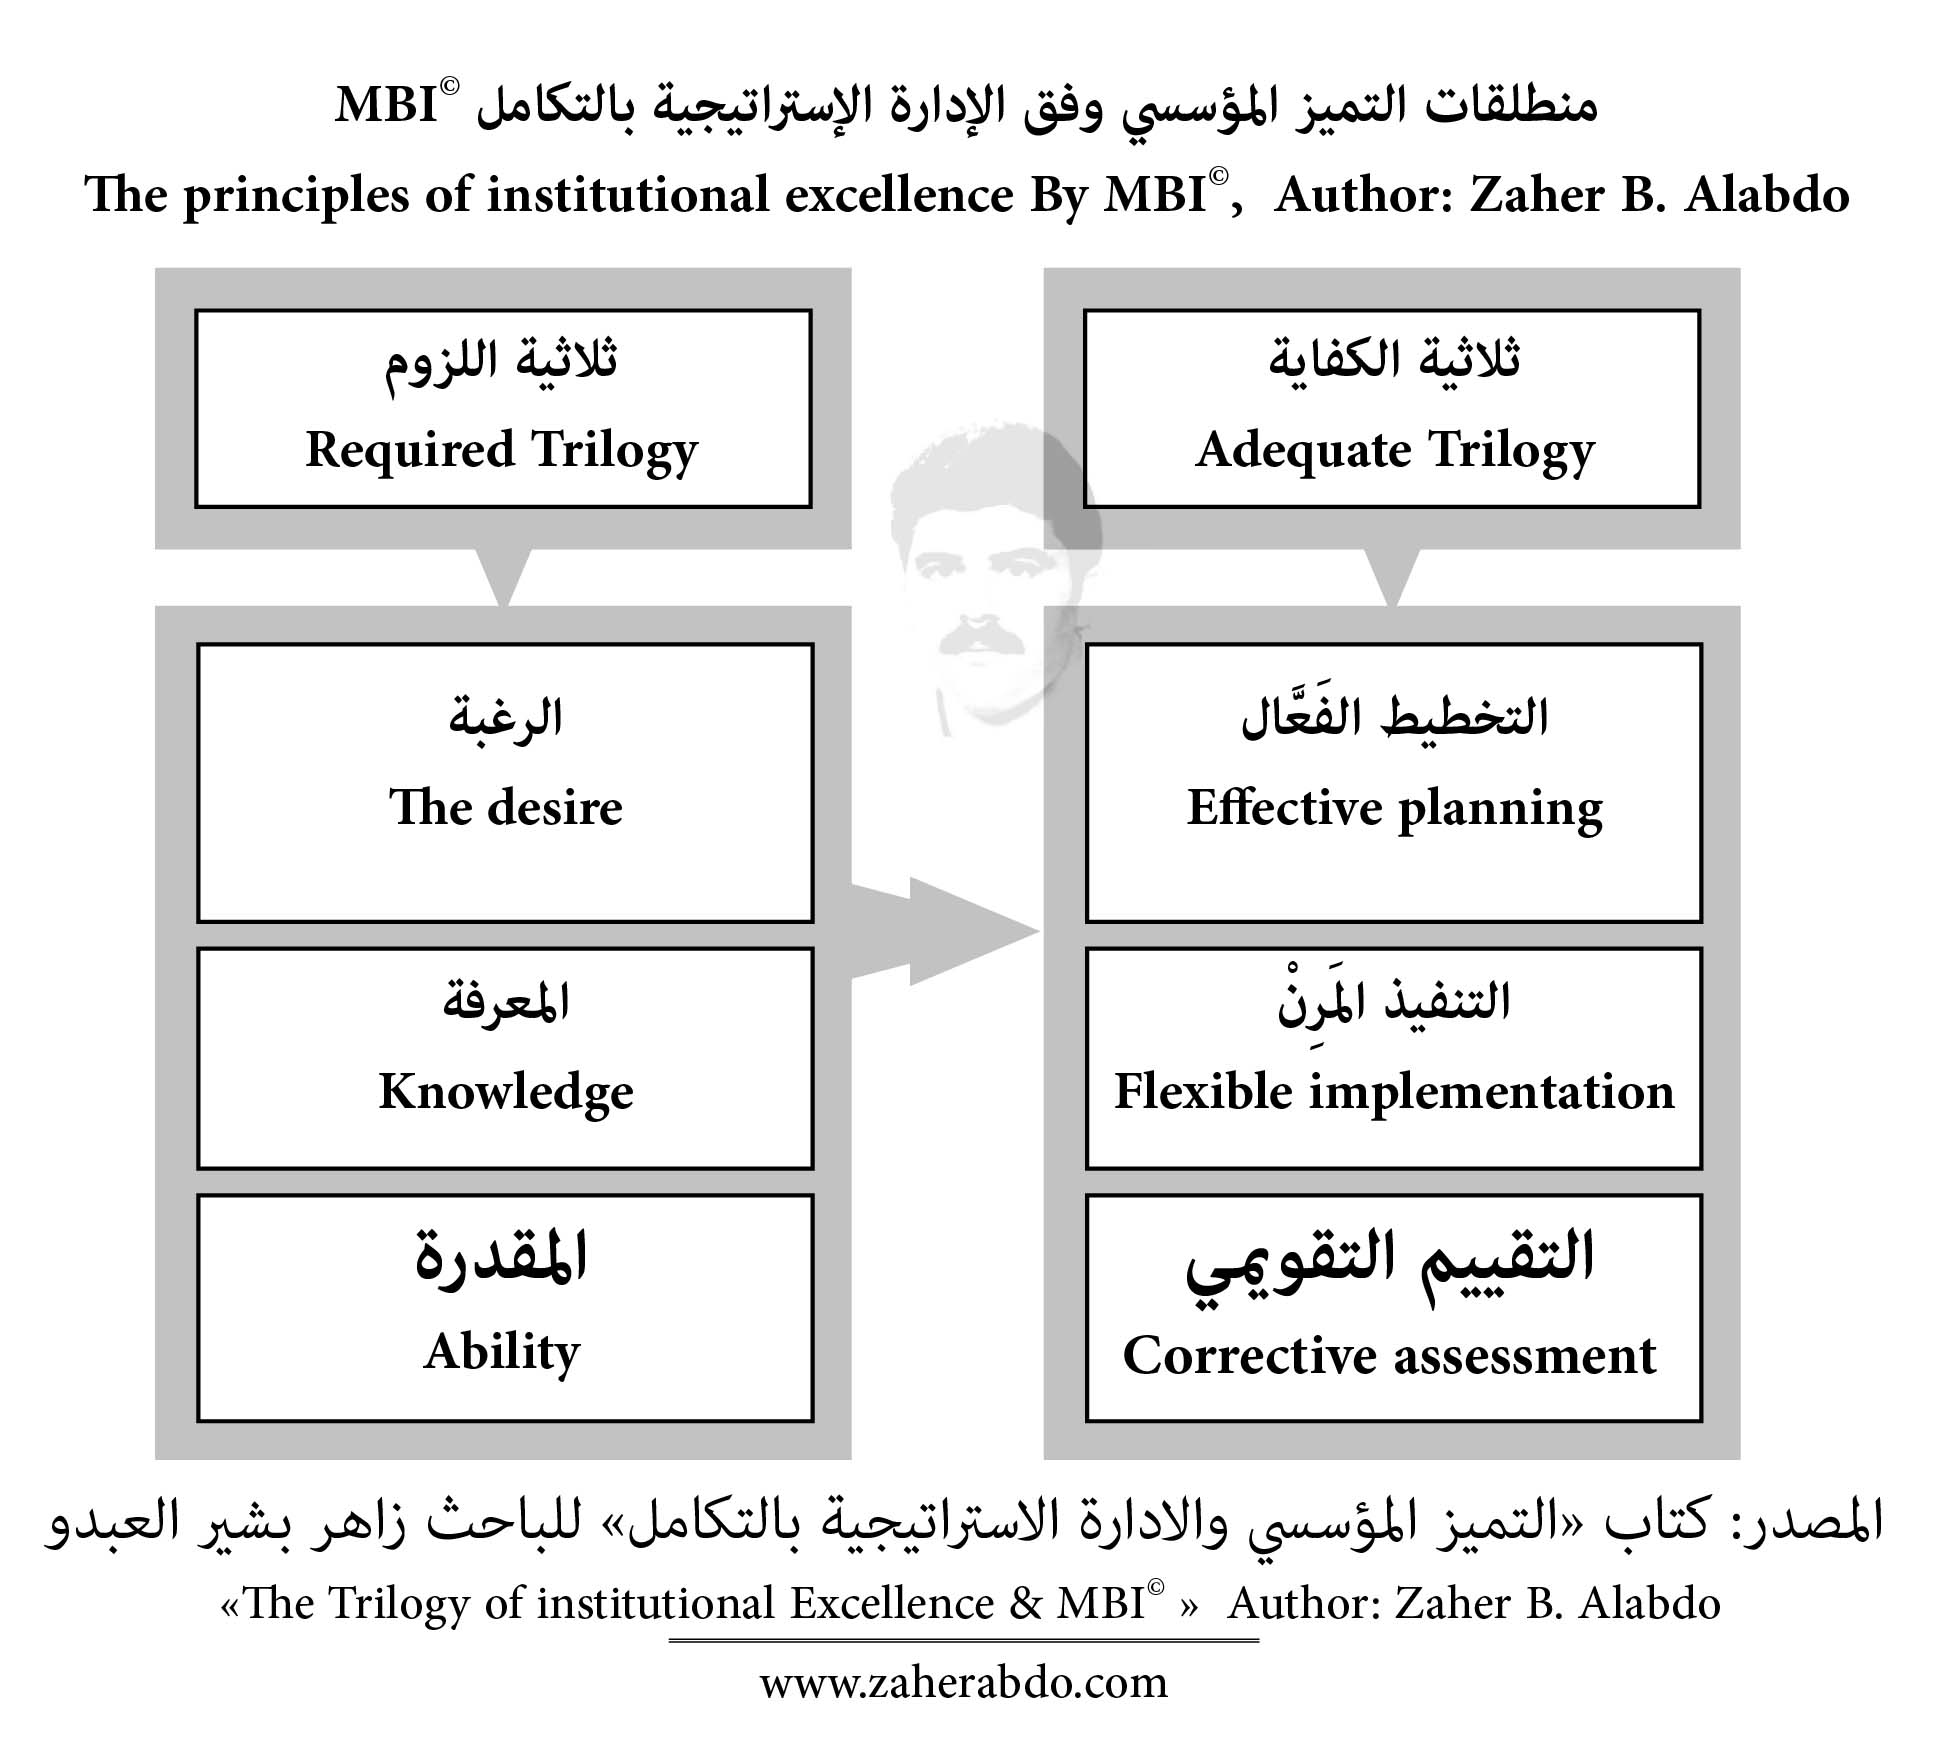 منطلقات التميز المؤسسي The principles of institutional excellence